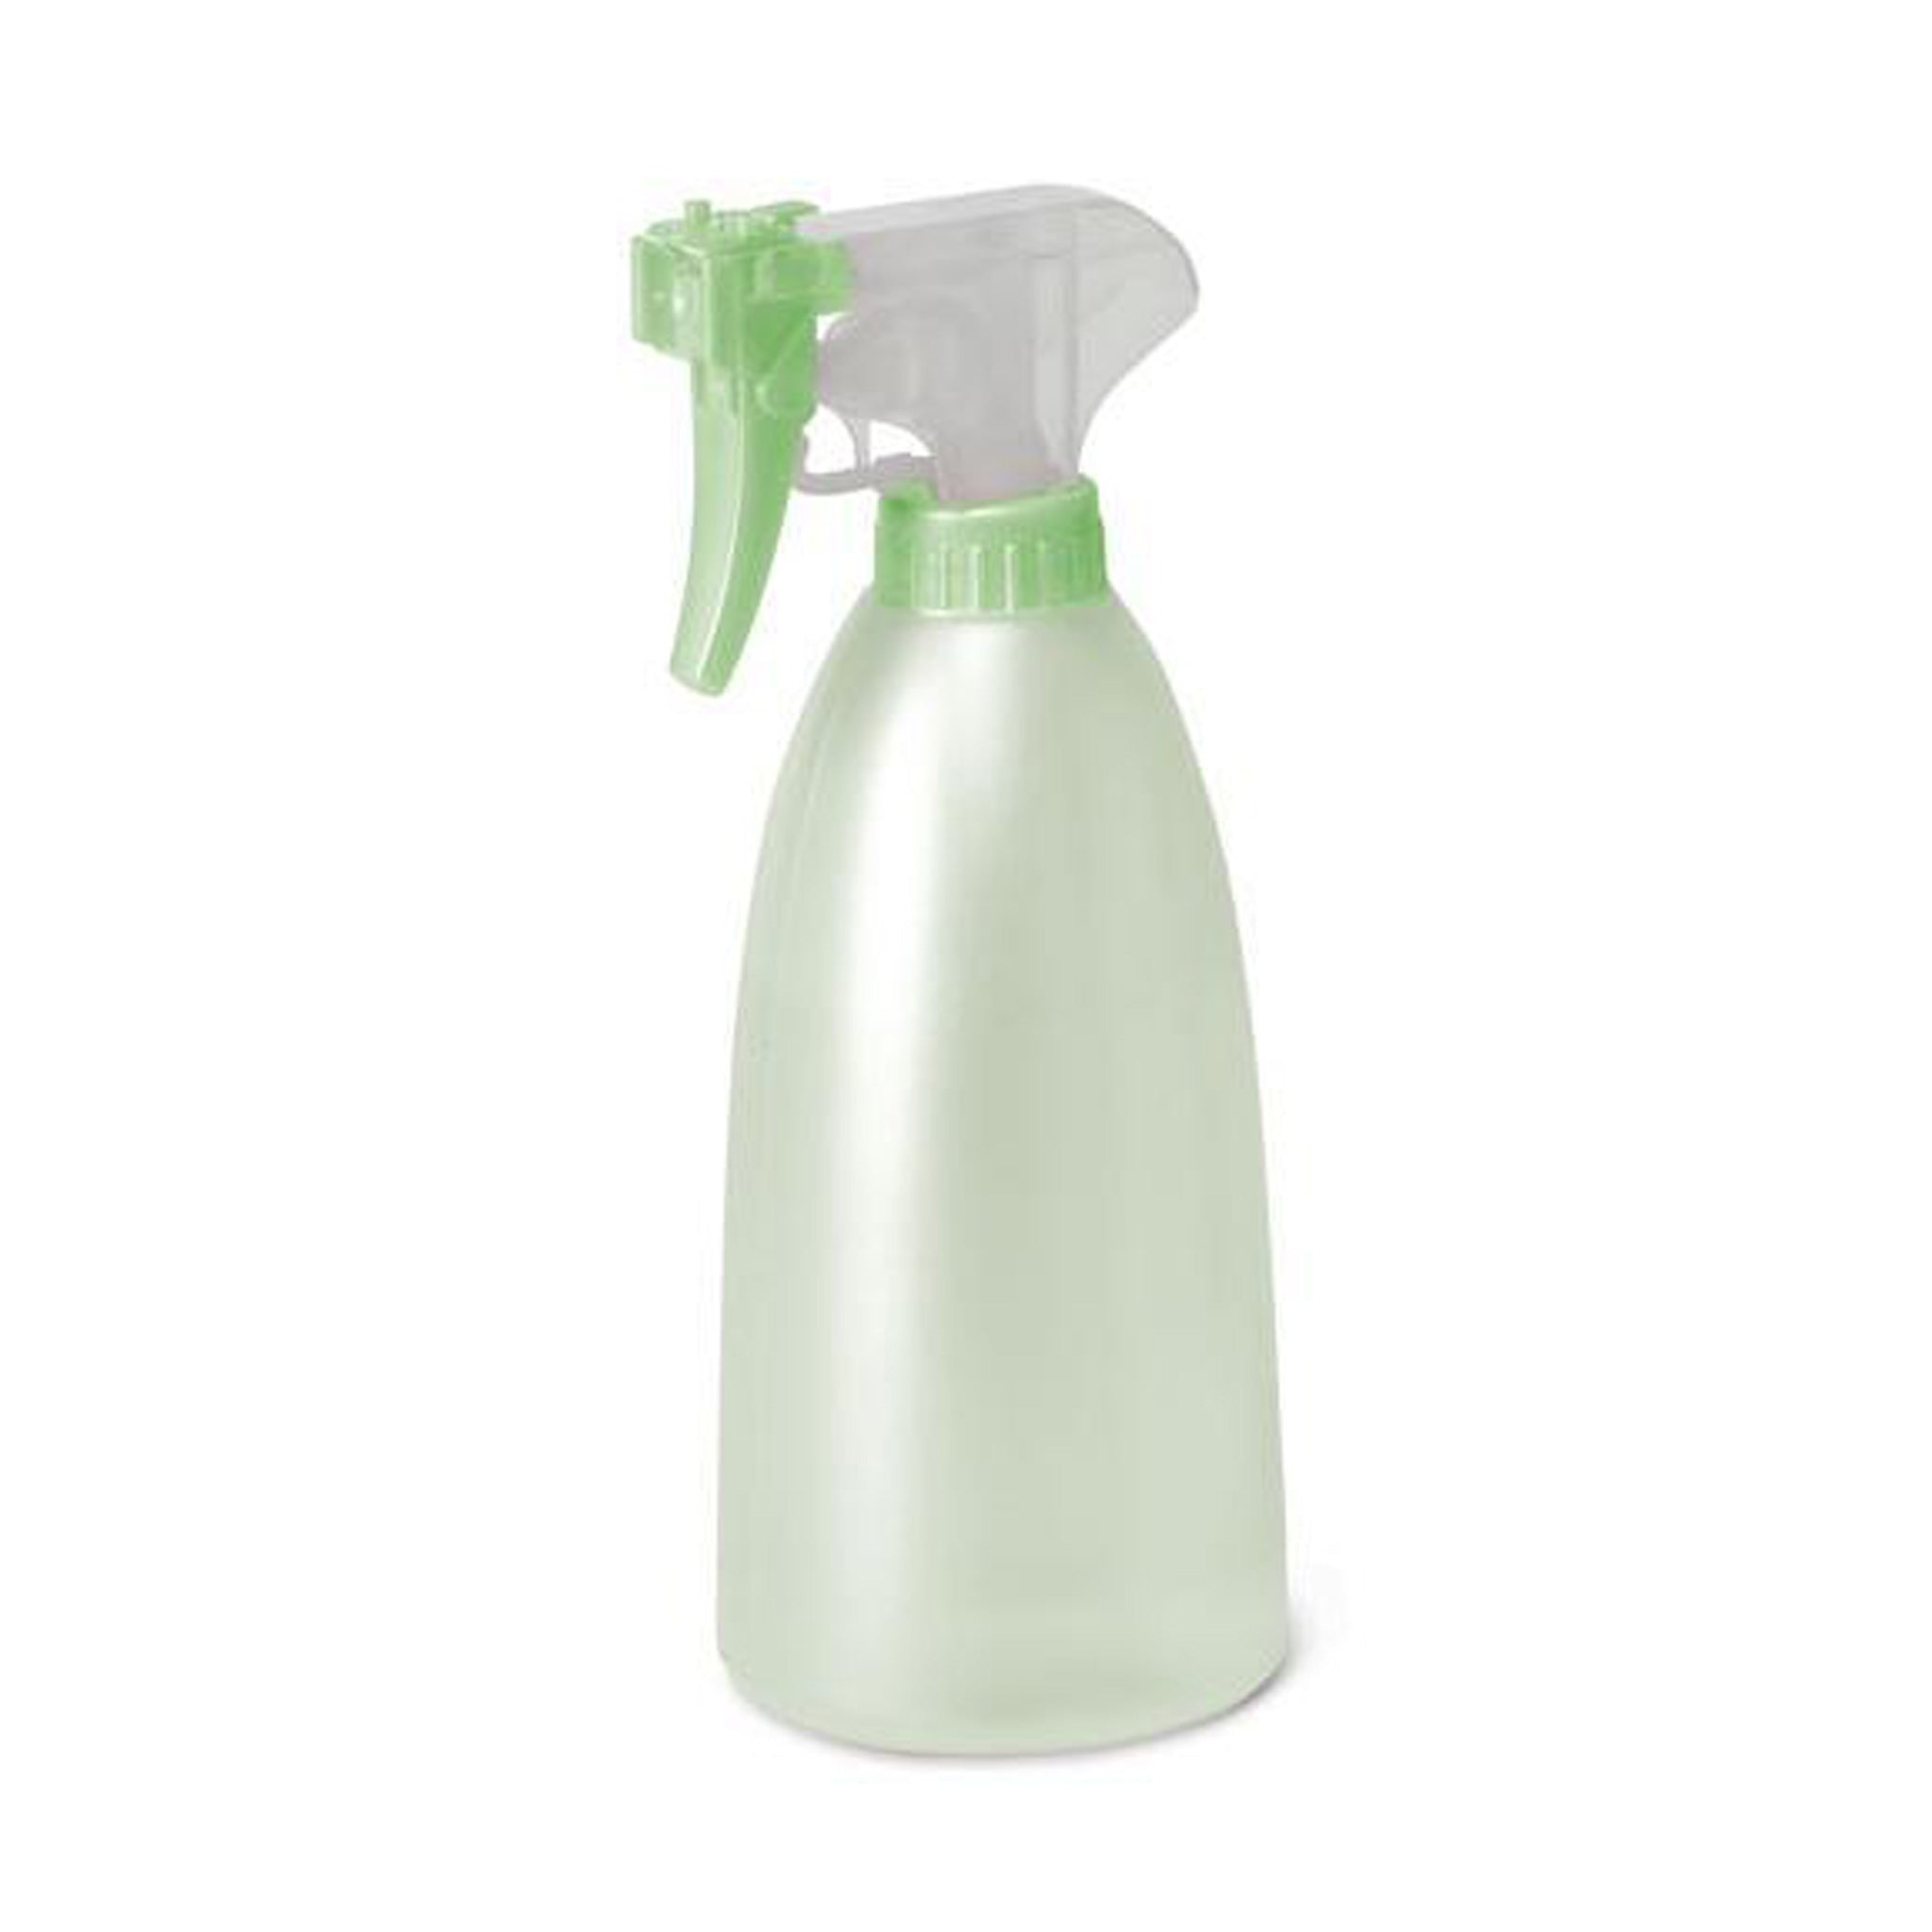 Sproutman's® Wheatgrass Spray Bottle